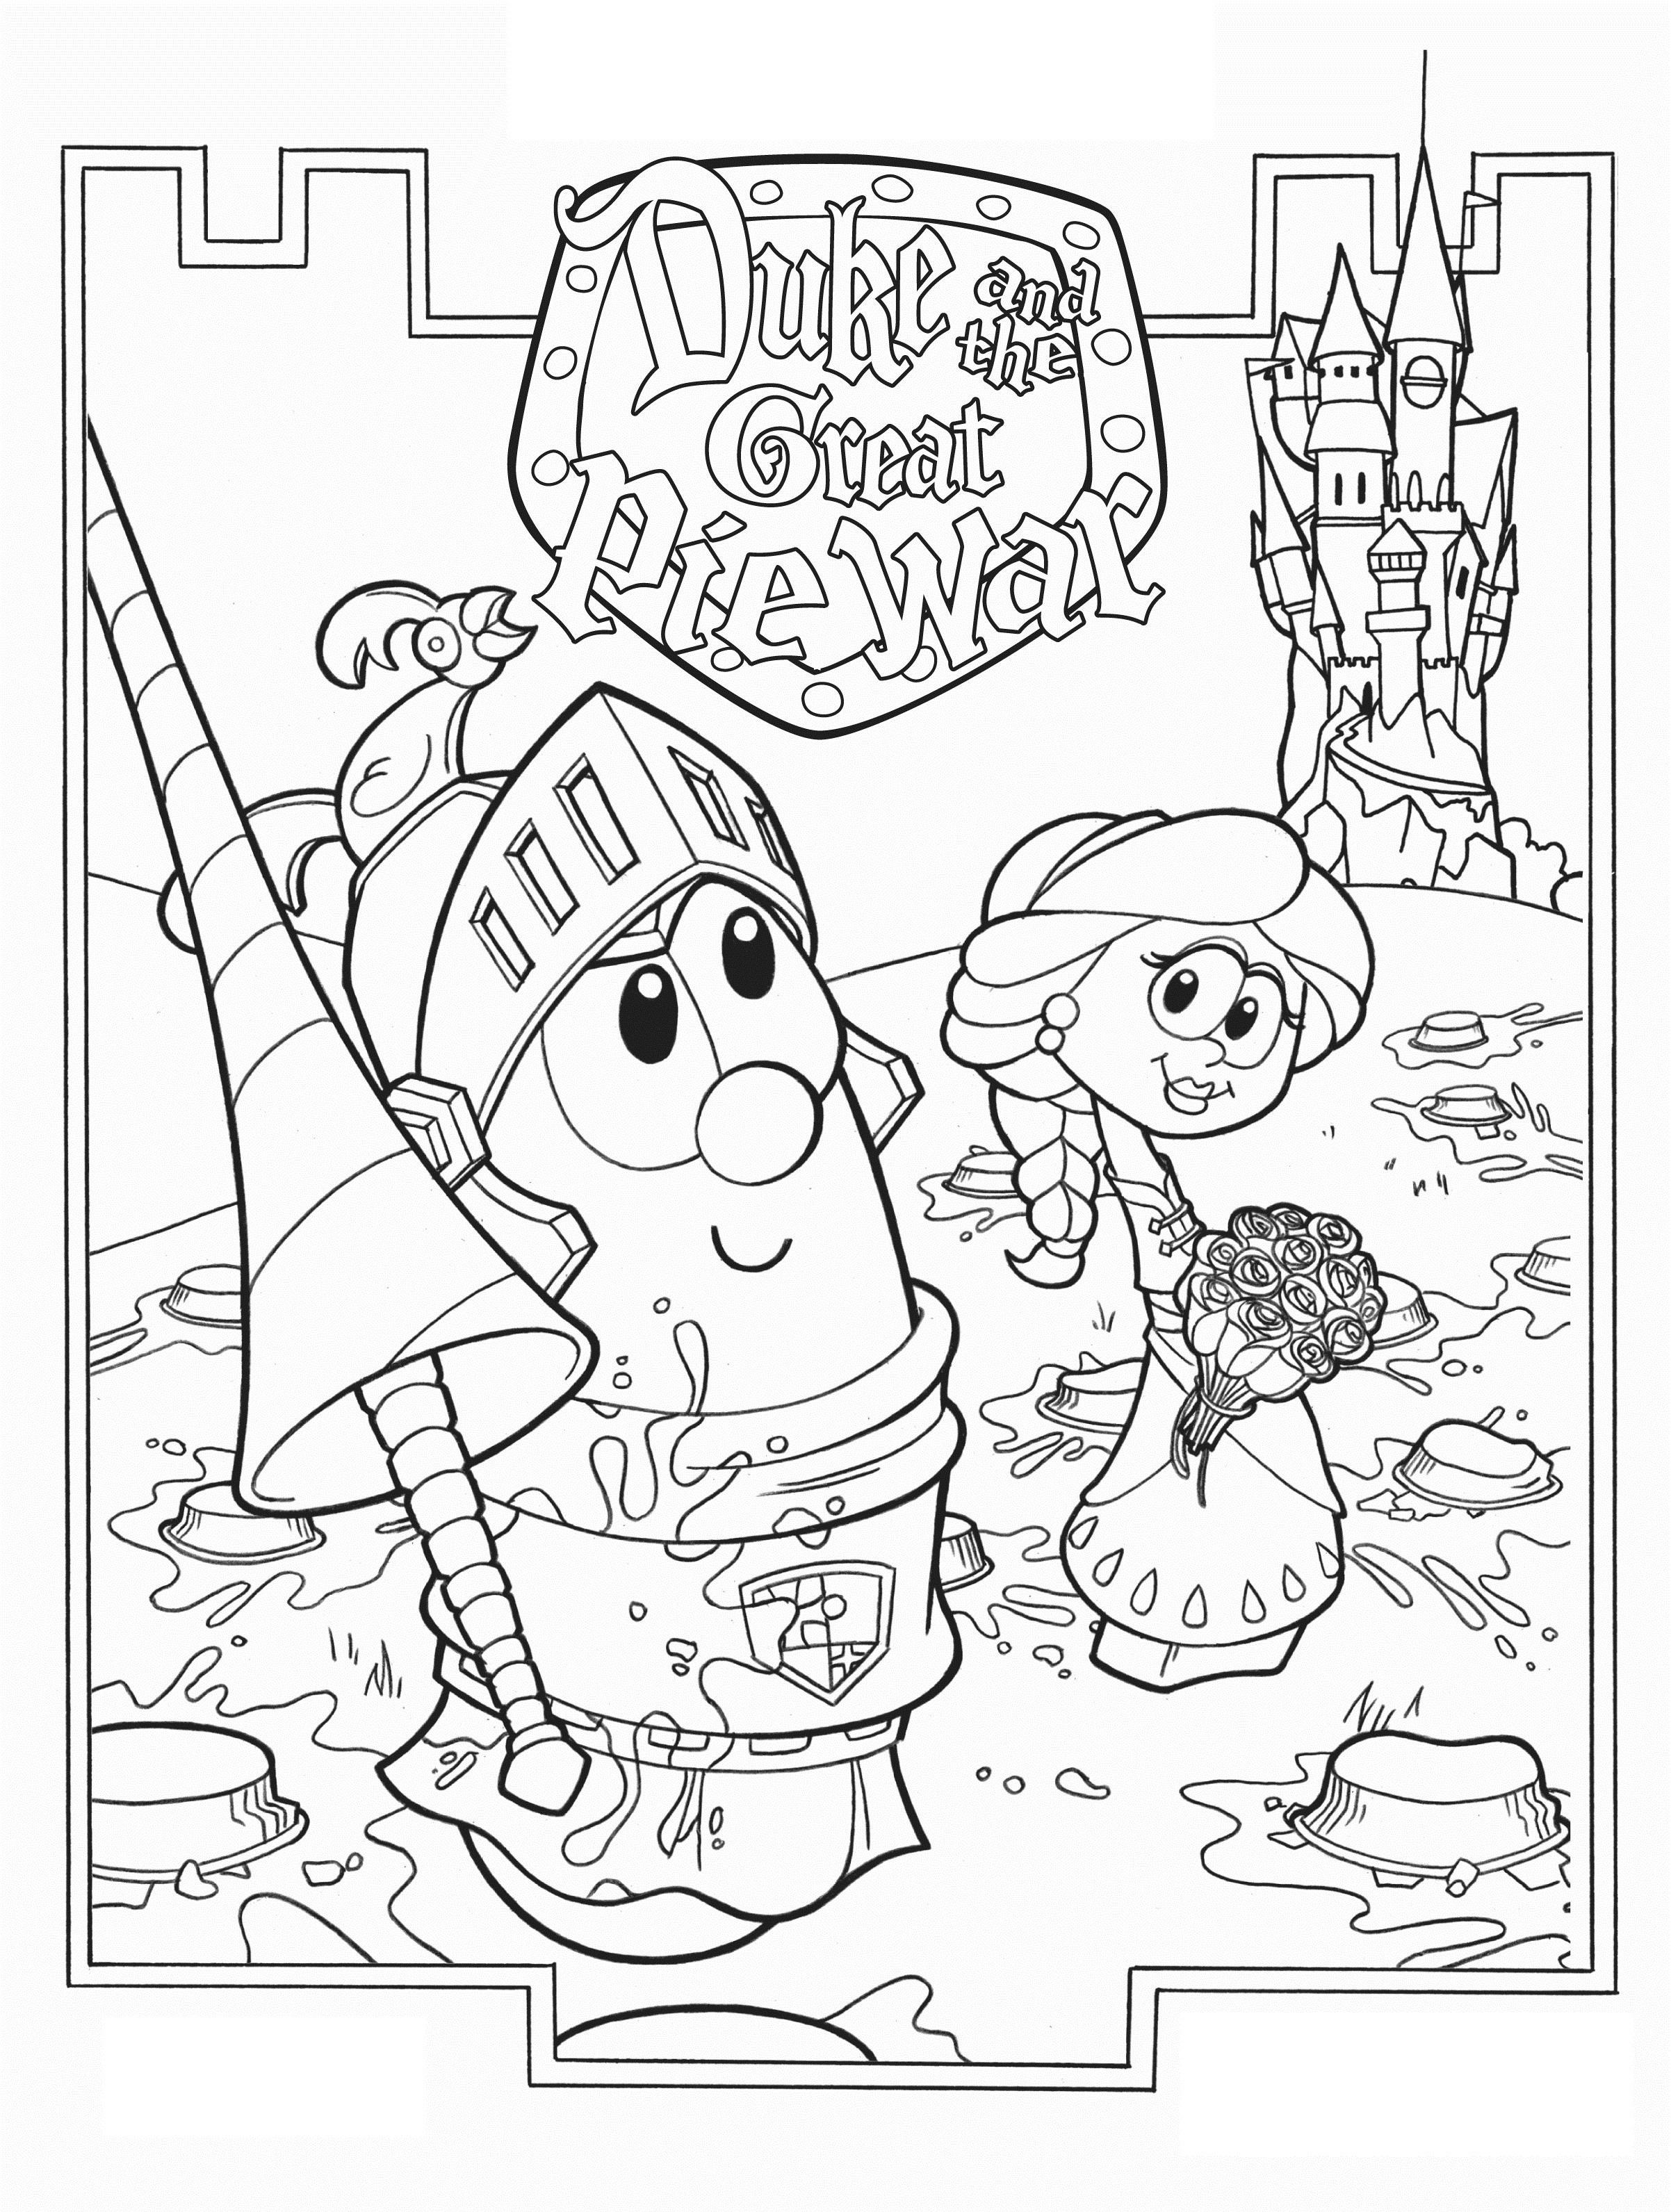 Veggietales Coloring Pages  Free Printable Veggie Tales Coloring Pages For Kids